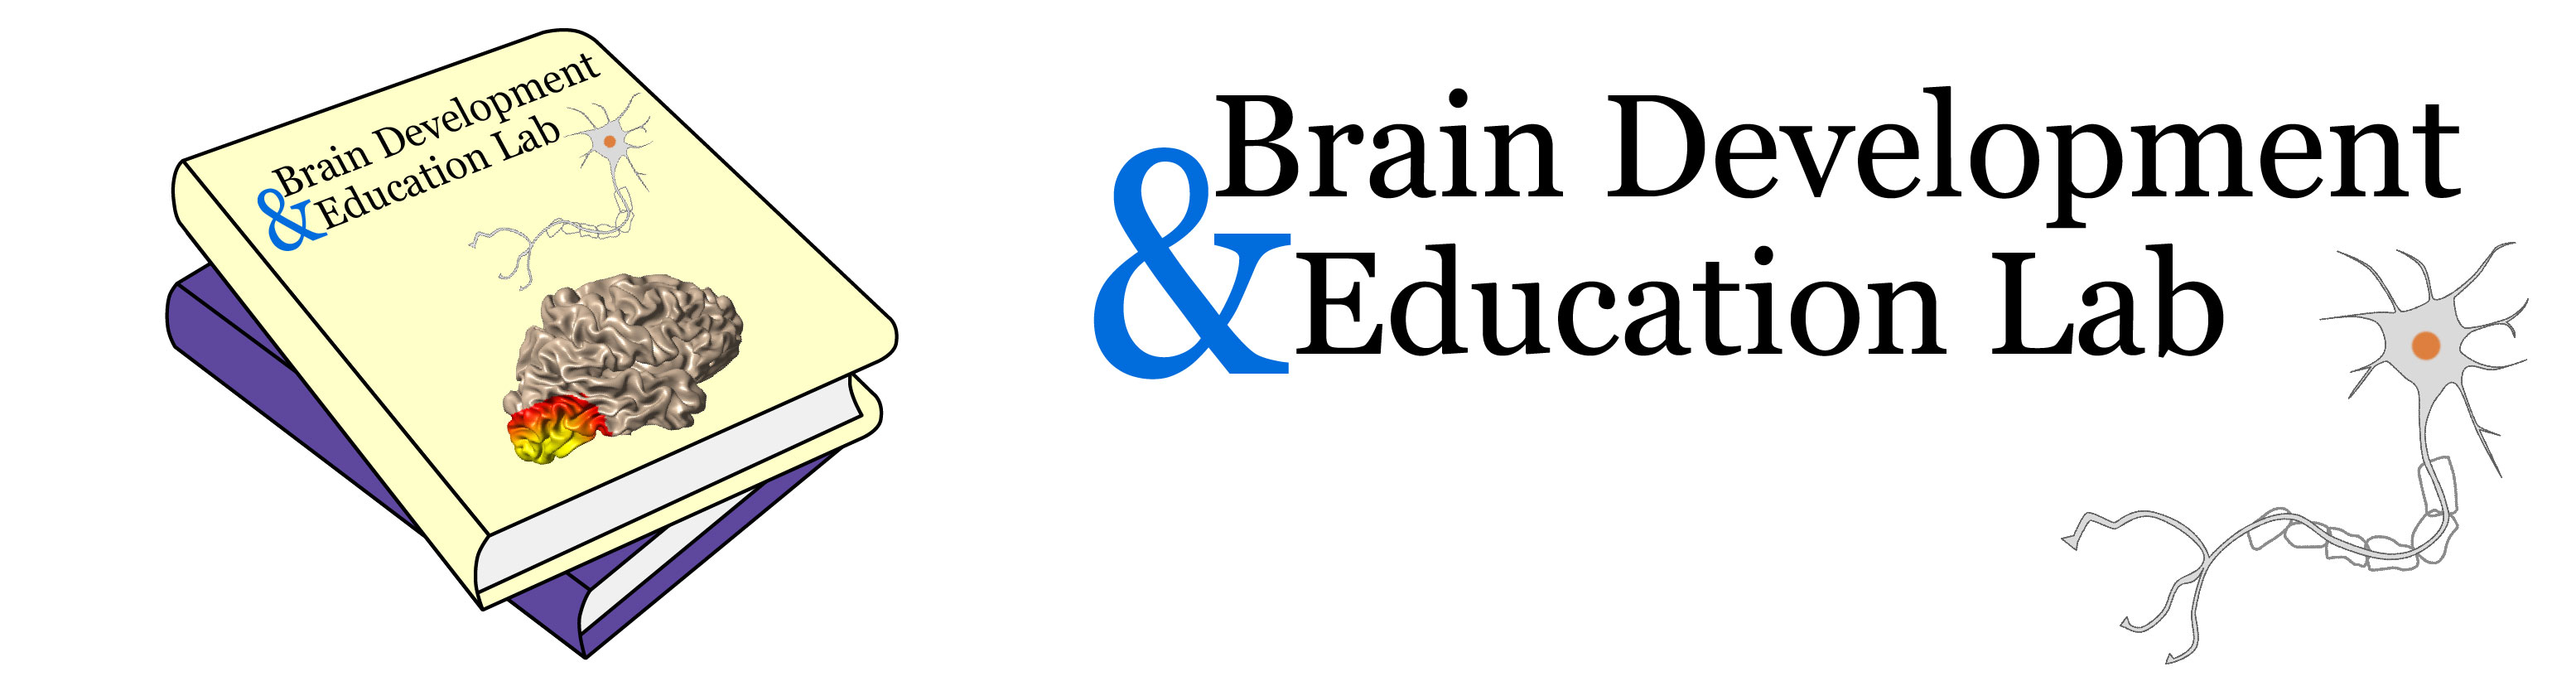 Brain Development & Education Lab